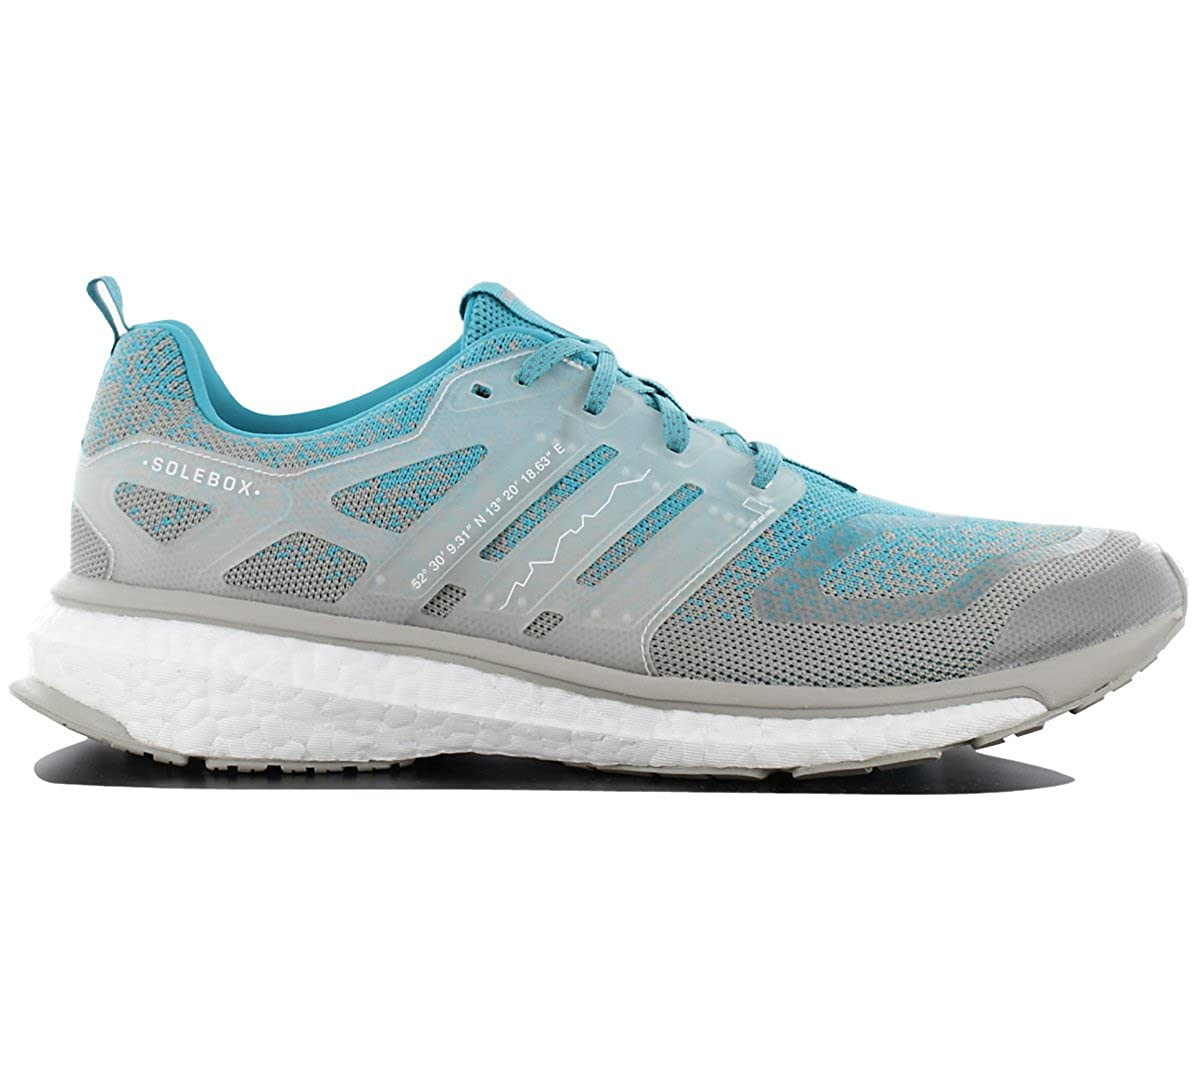 save off a5838 325cc Amazon.com  adidas - Consortium Energy Boost Mid SE X Packer Shoes Solebox  - CP9762 - Color Turquoise-Grey - Size 9.5  Fashion Sneakers